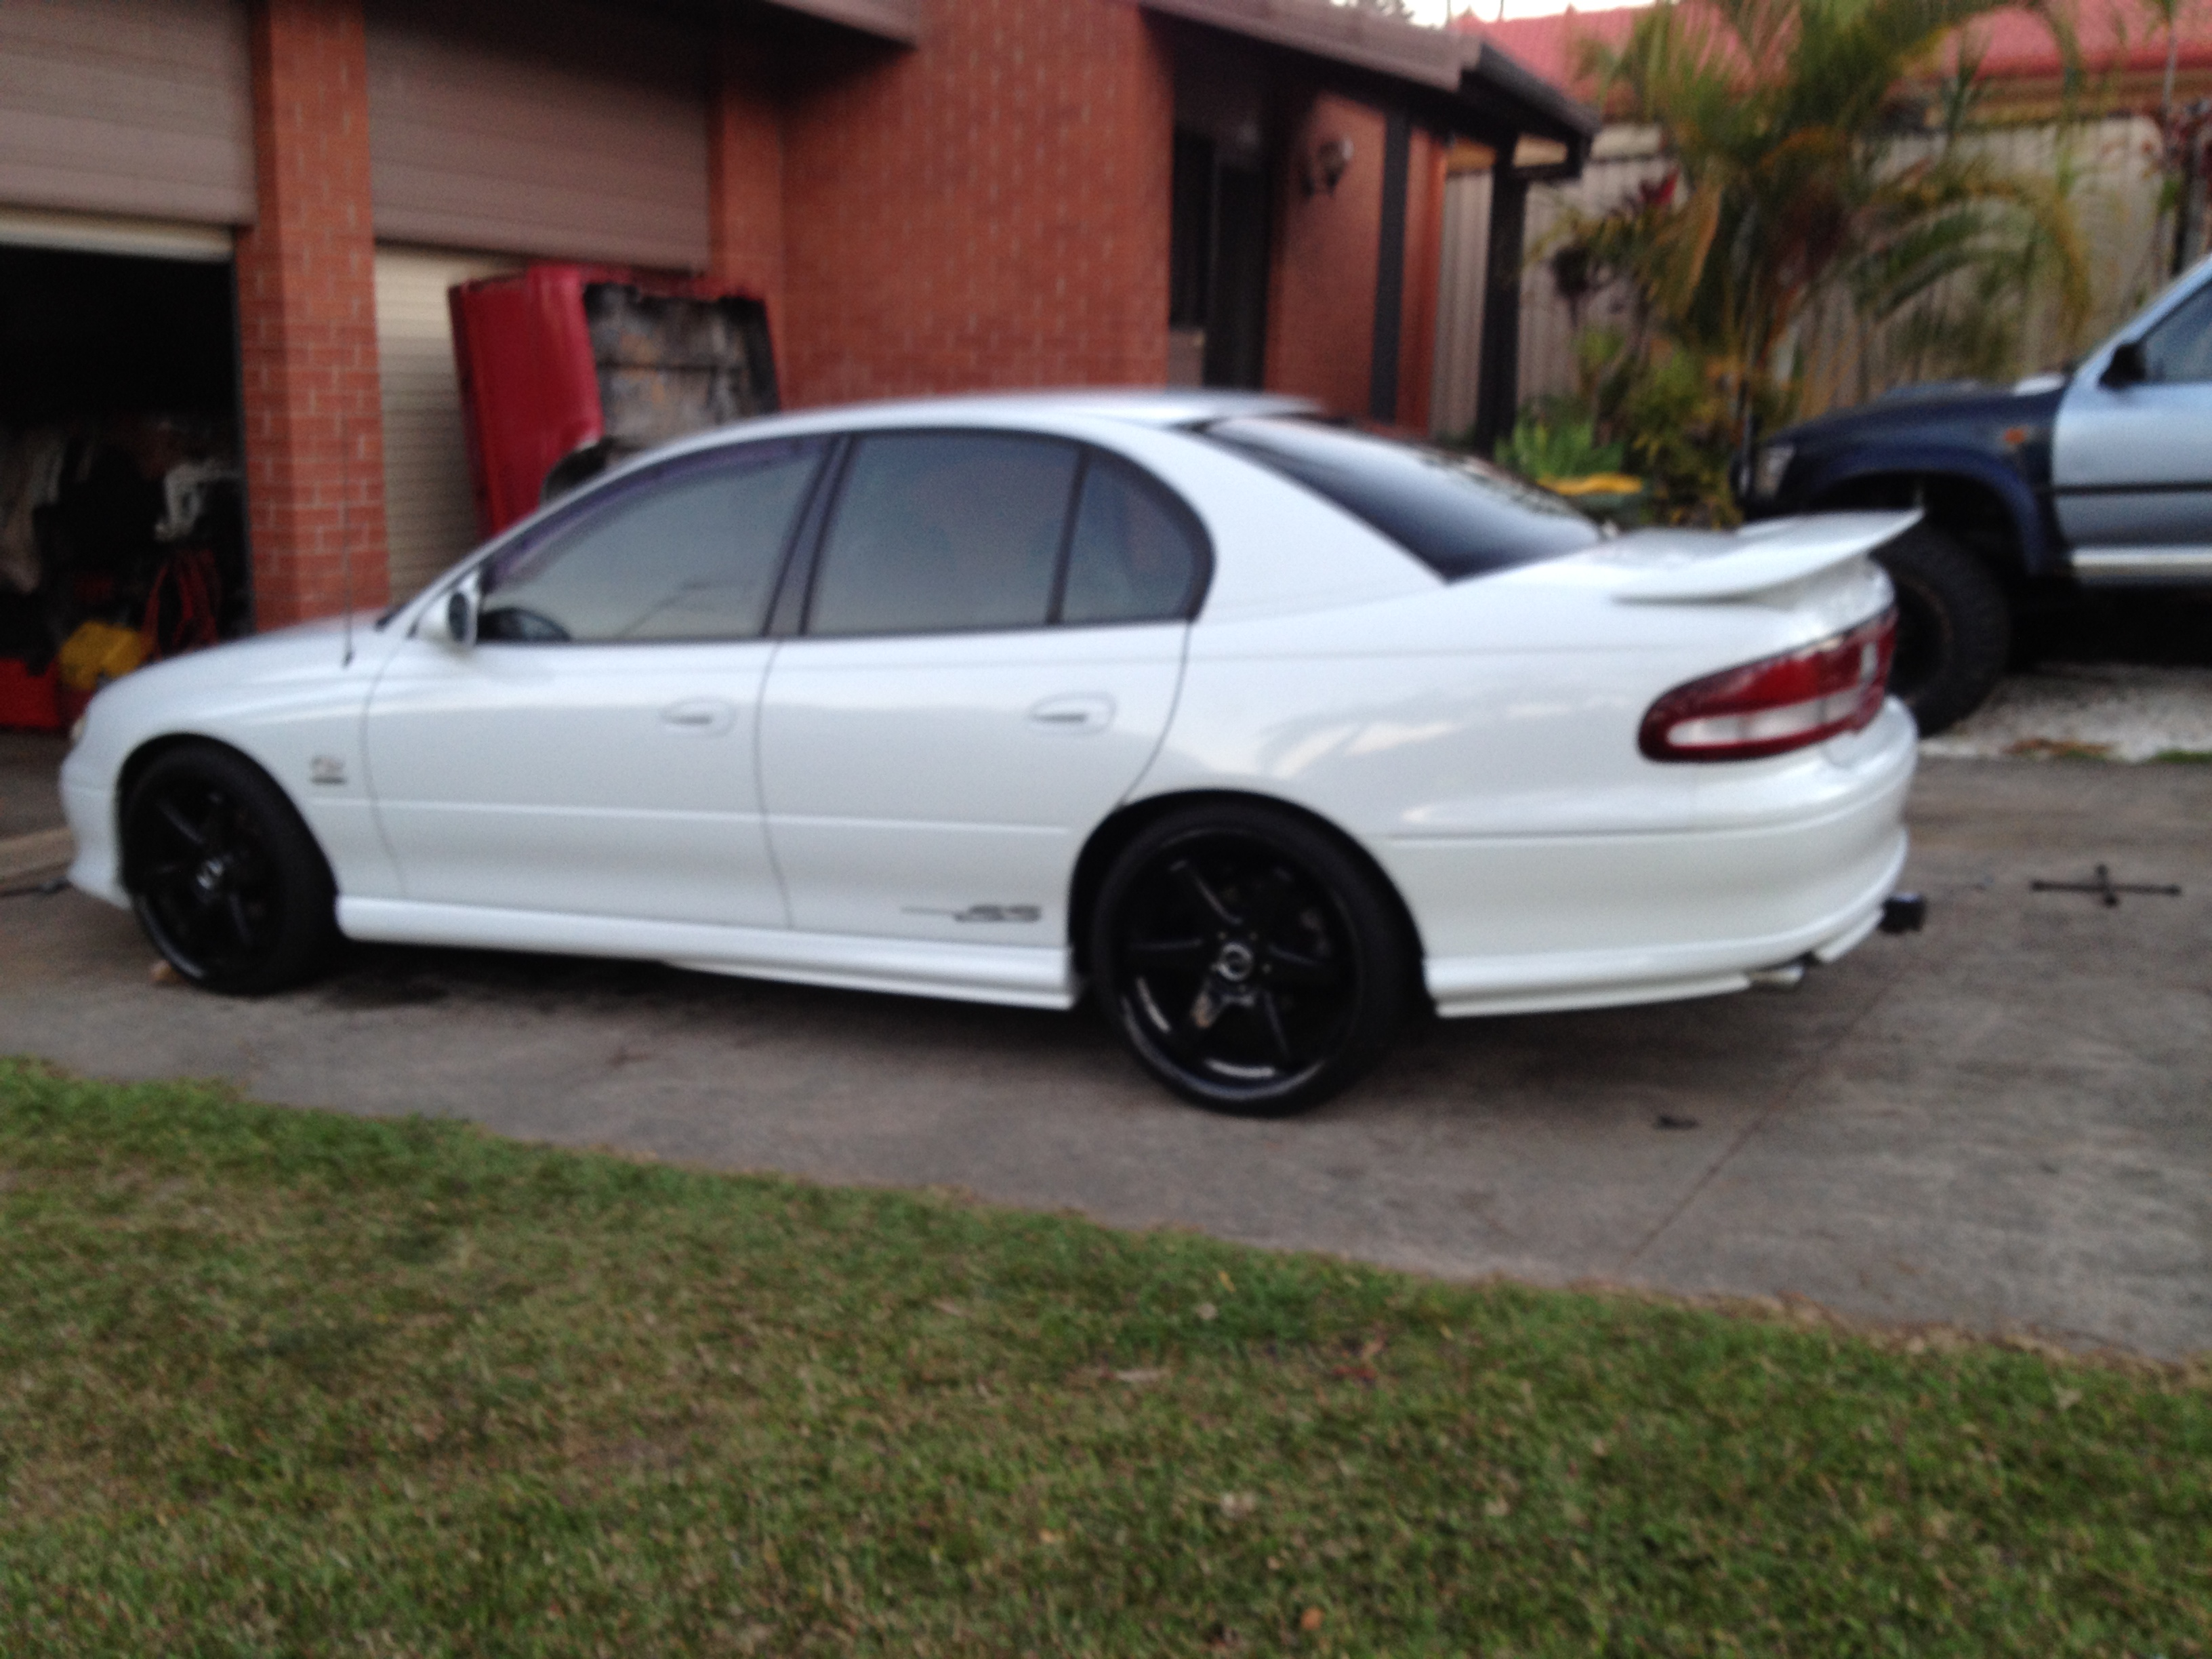 holden commodore (vt) 2014 images #9